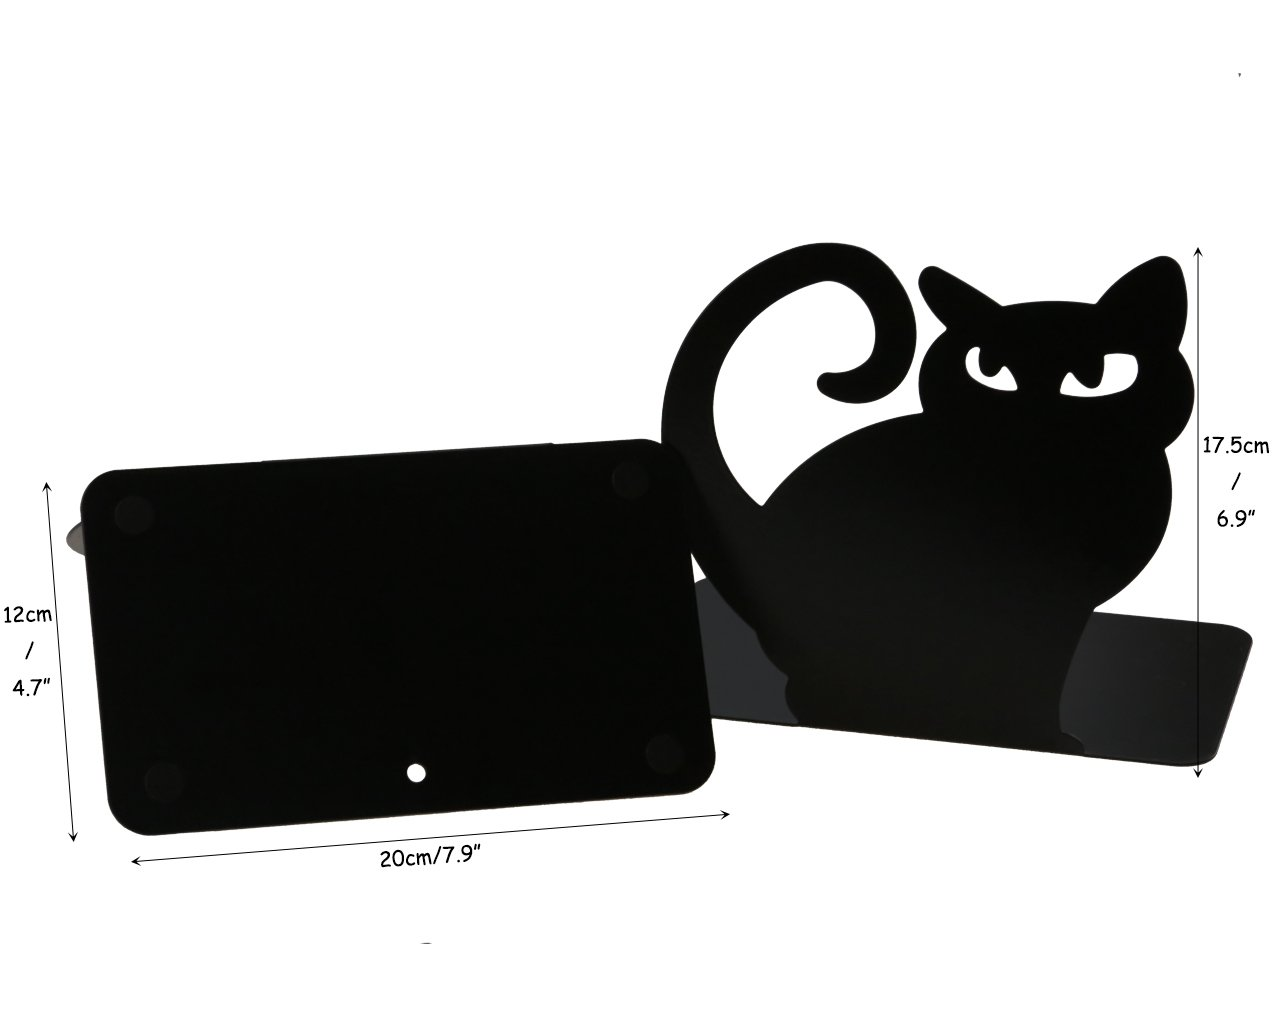 Cute Vivid Lovely Persian Cat Book Organizer Metal Bookends For Kids School Library Desk Study Home Office Decoration Gift (Black) by Apol (Image #3)